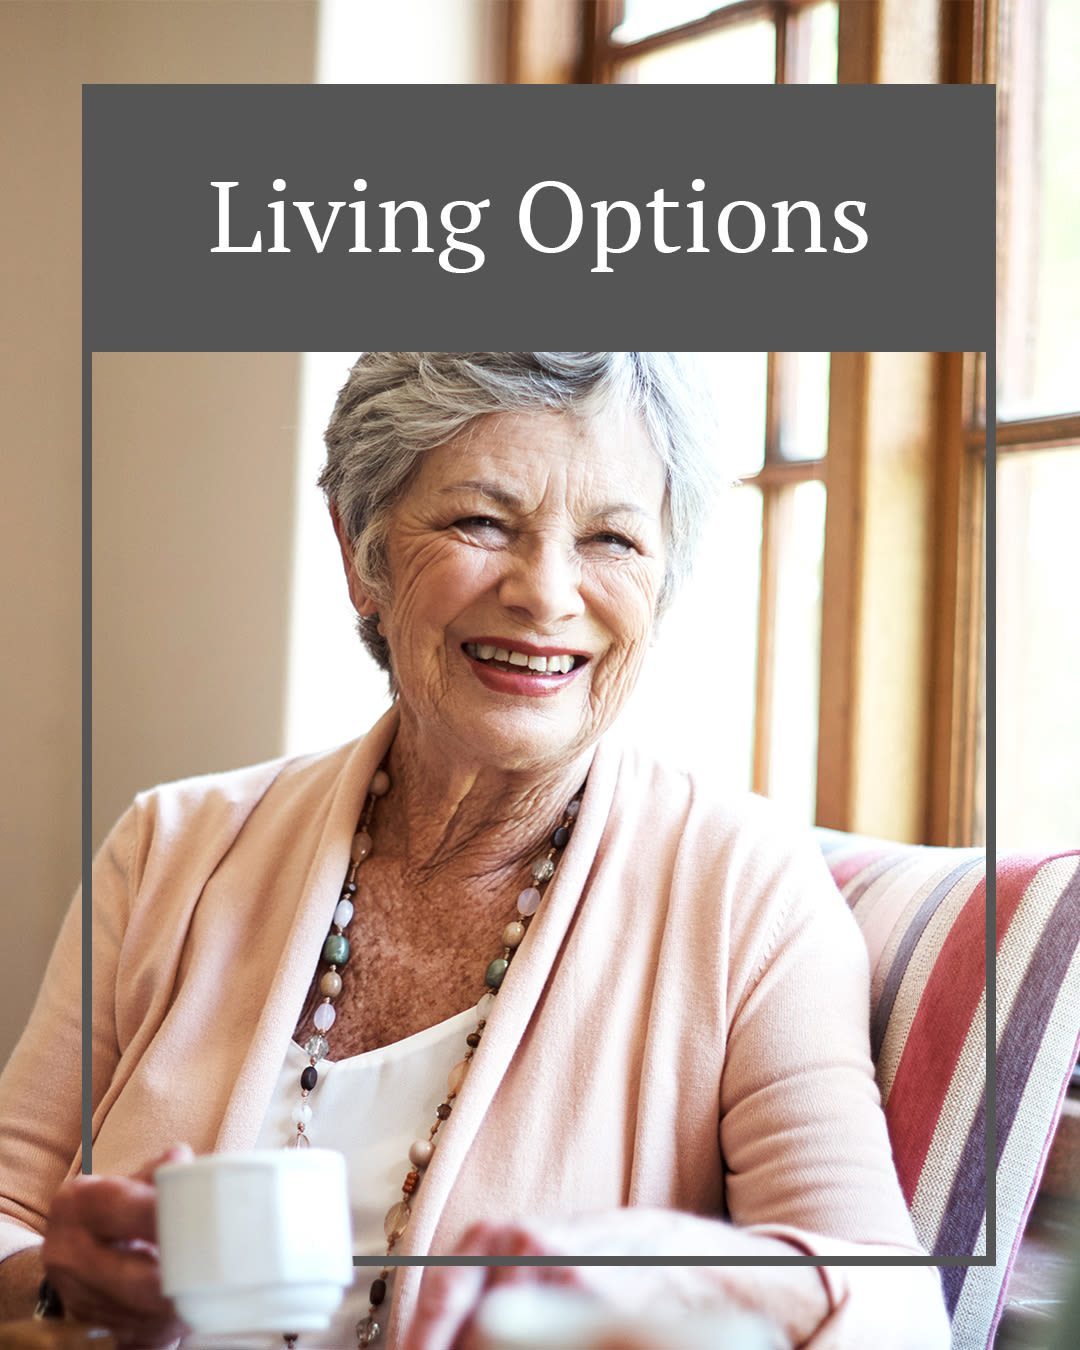 Living options at Autumn Grove Cottage at The Woodlands in The Woodlands, Texas